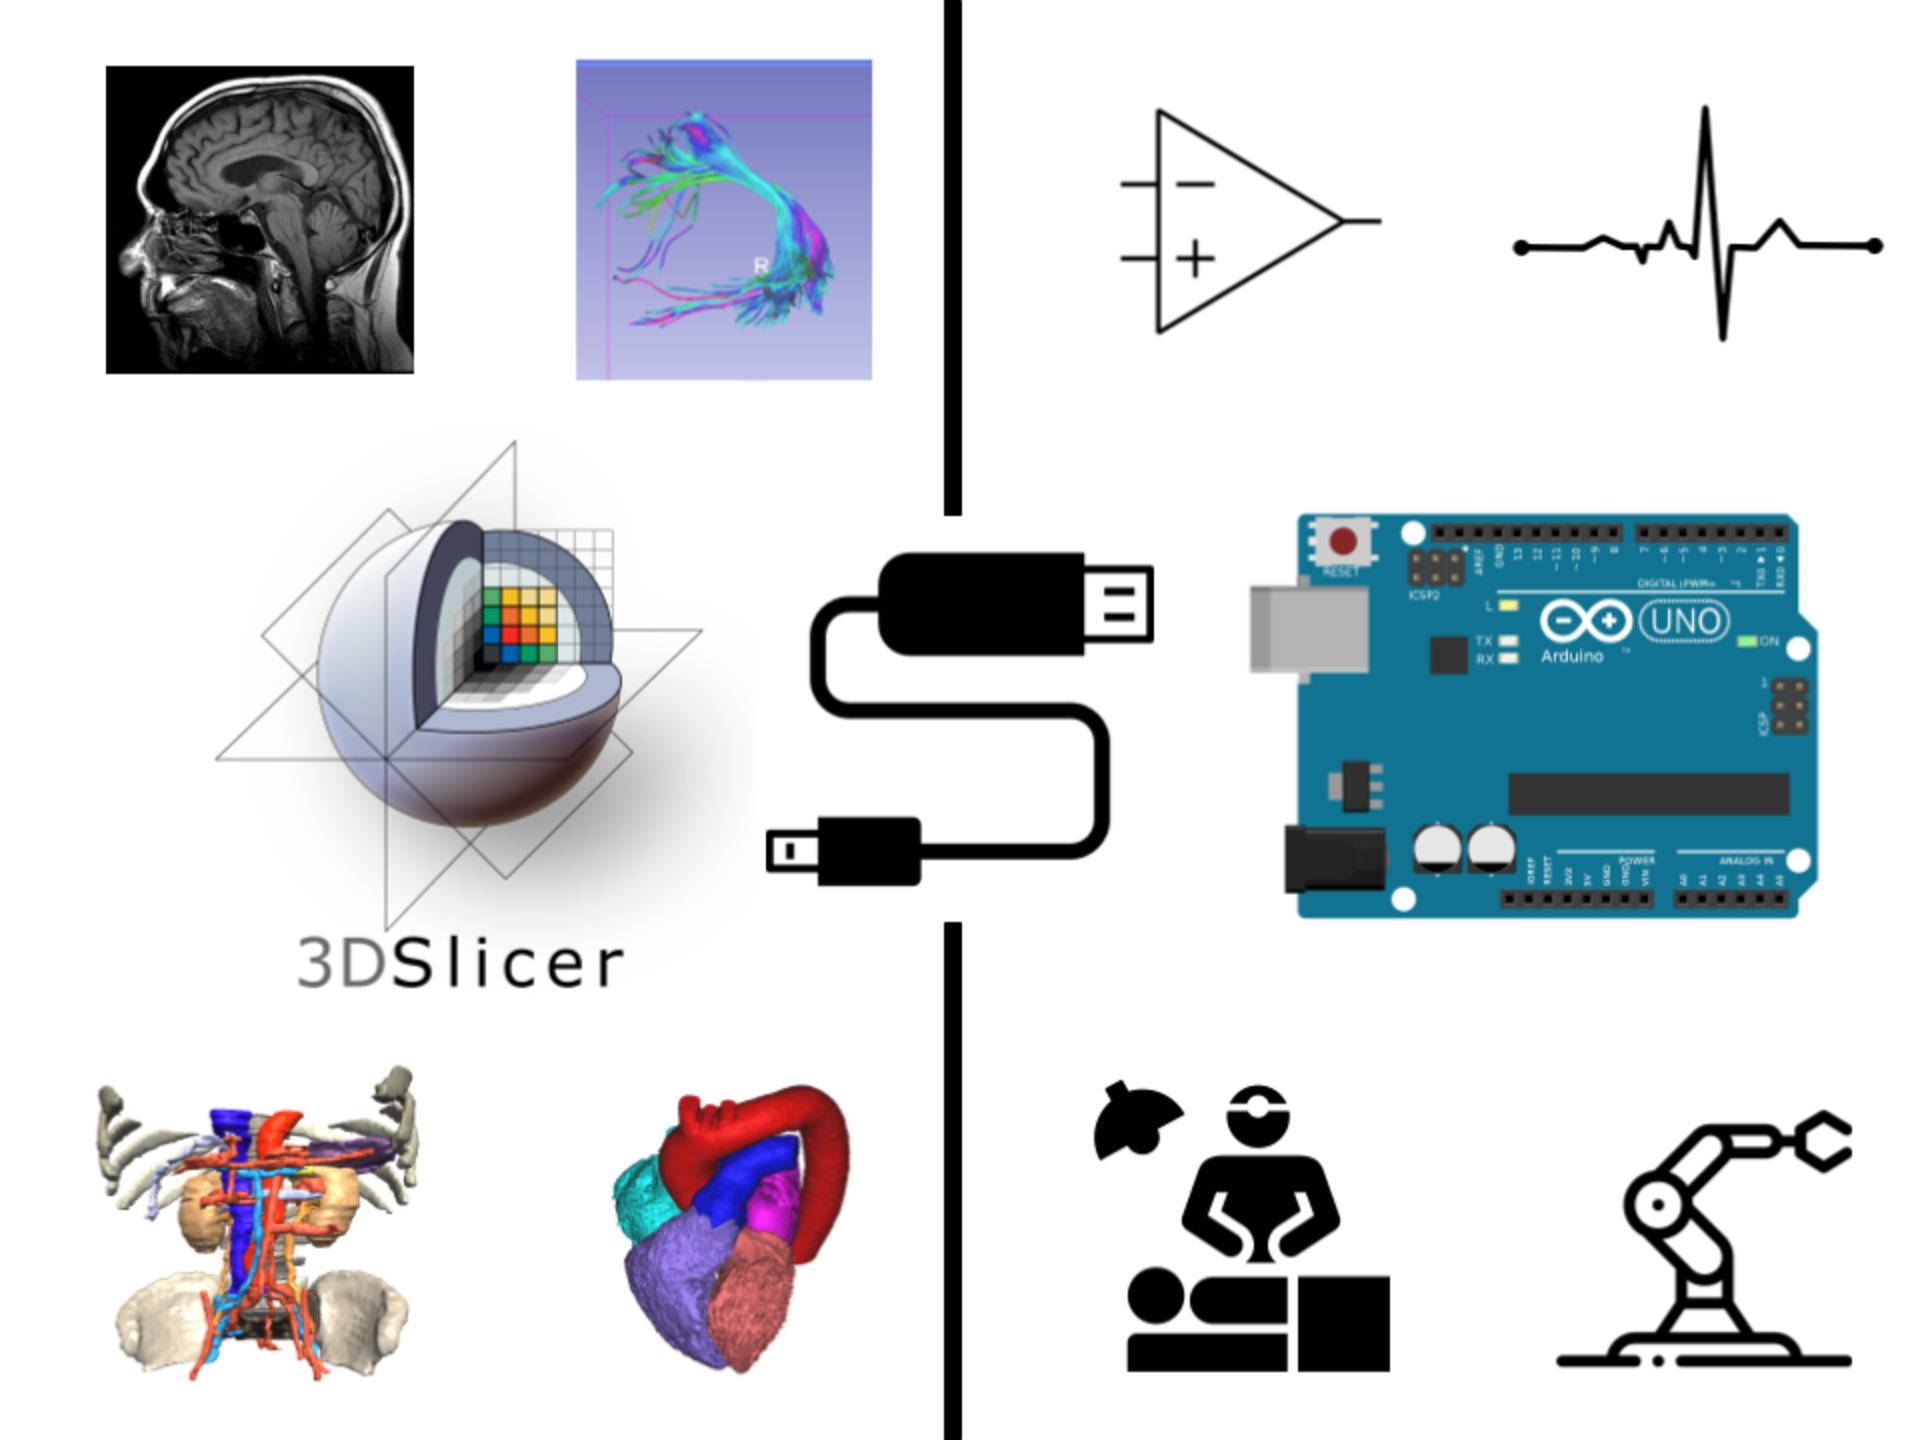 SlicerArduino graphical abstract